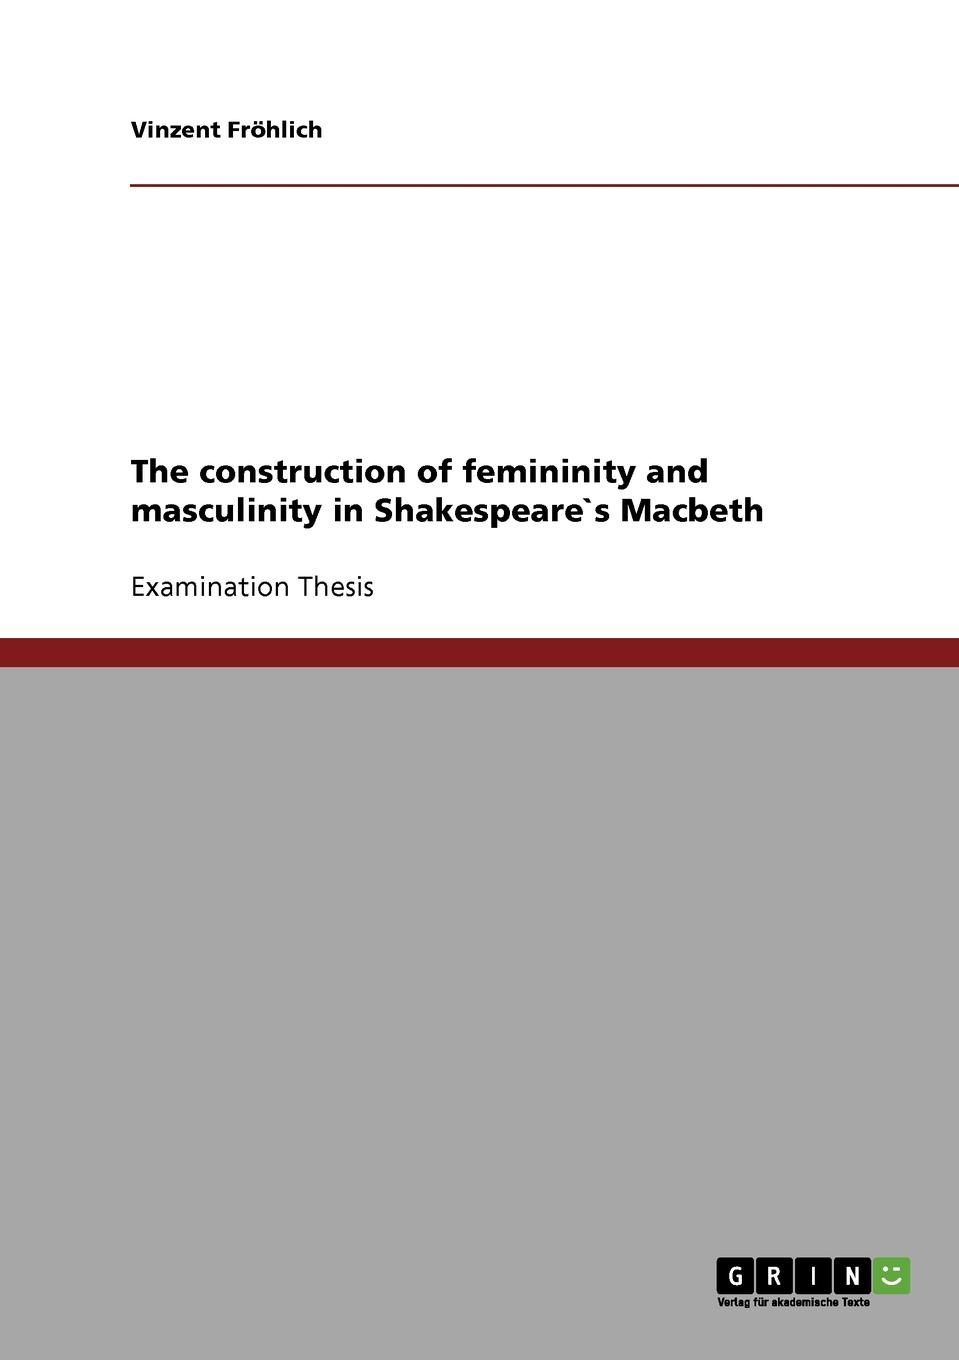 Vinzent Fröhlich The construction of femininity and masculinity in Shakespeare.s Macbeth john philip kemble macbeth and king richard the third an essay in answer to remarks on some of the characters of shakspeare